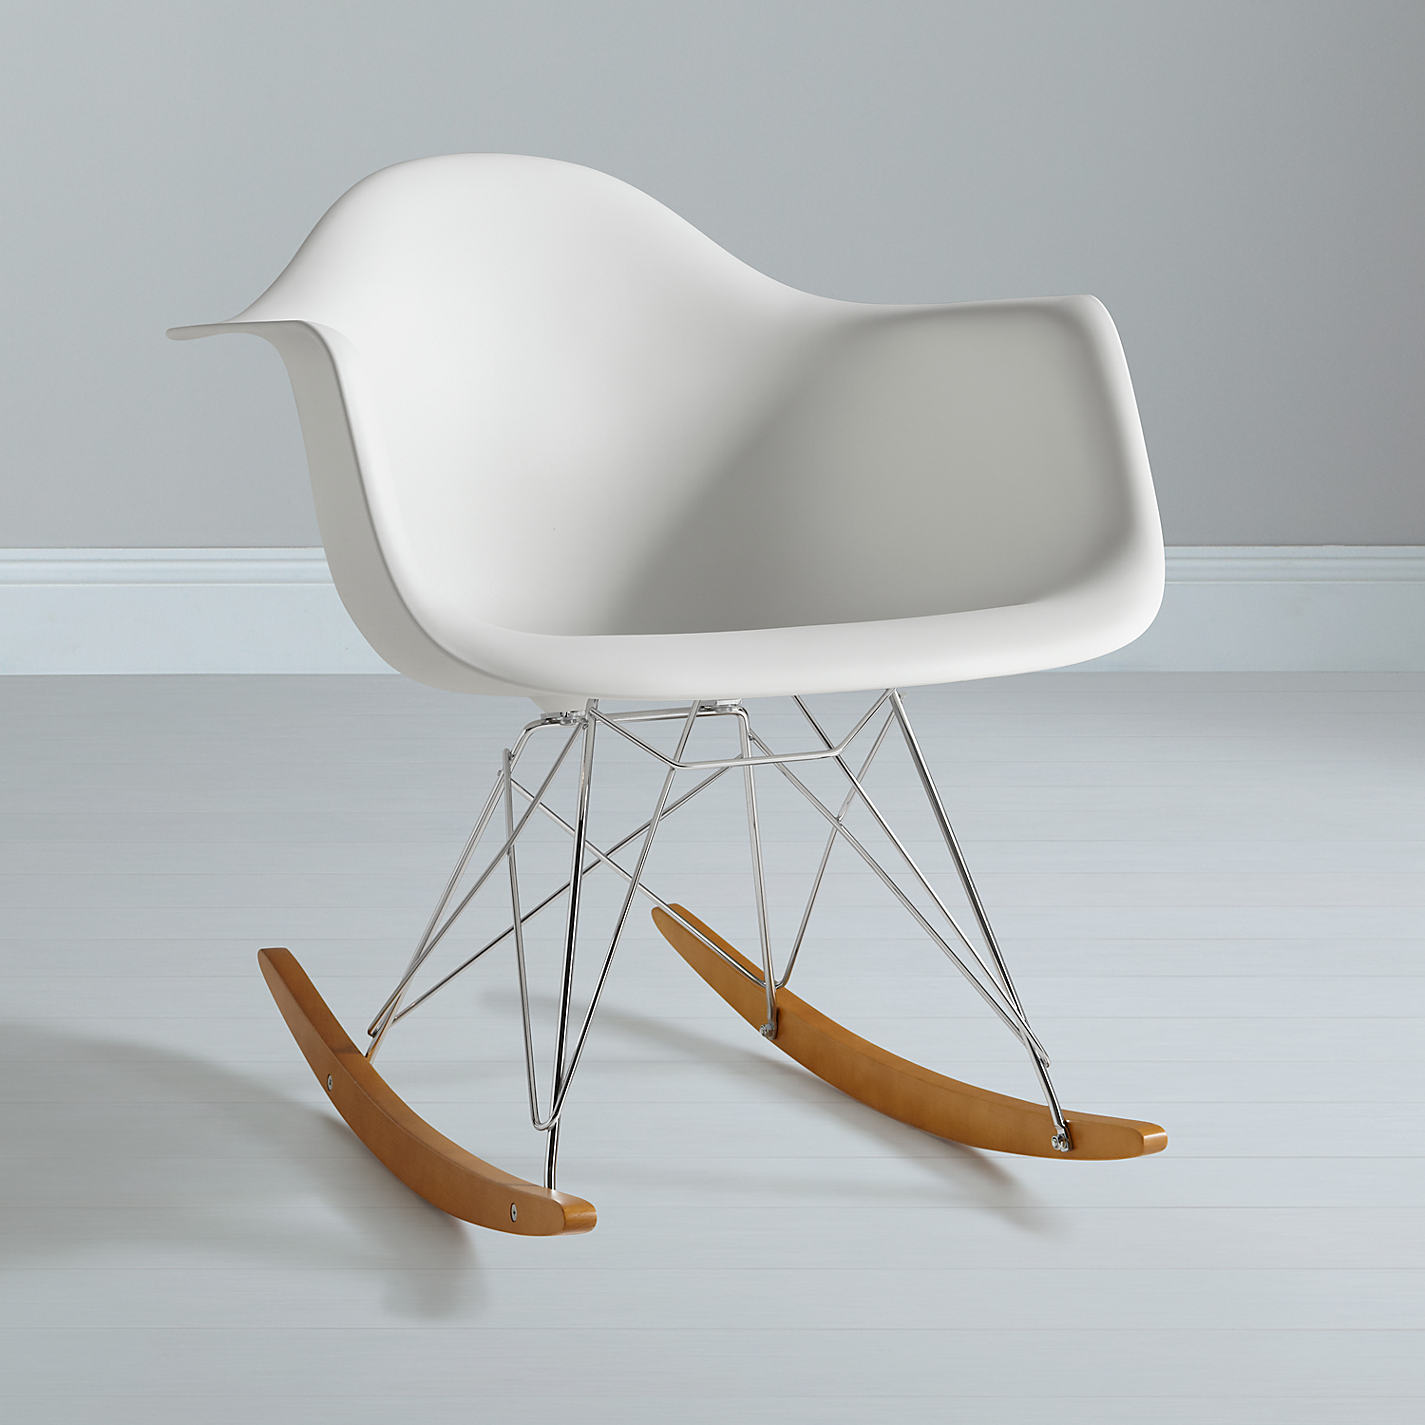 Marvelous photograph of Vitra Rocking Chair Rar Rocking Chair Online with #794B23 color and 1425x1425 pixels